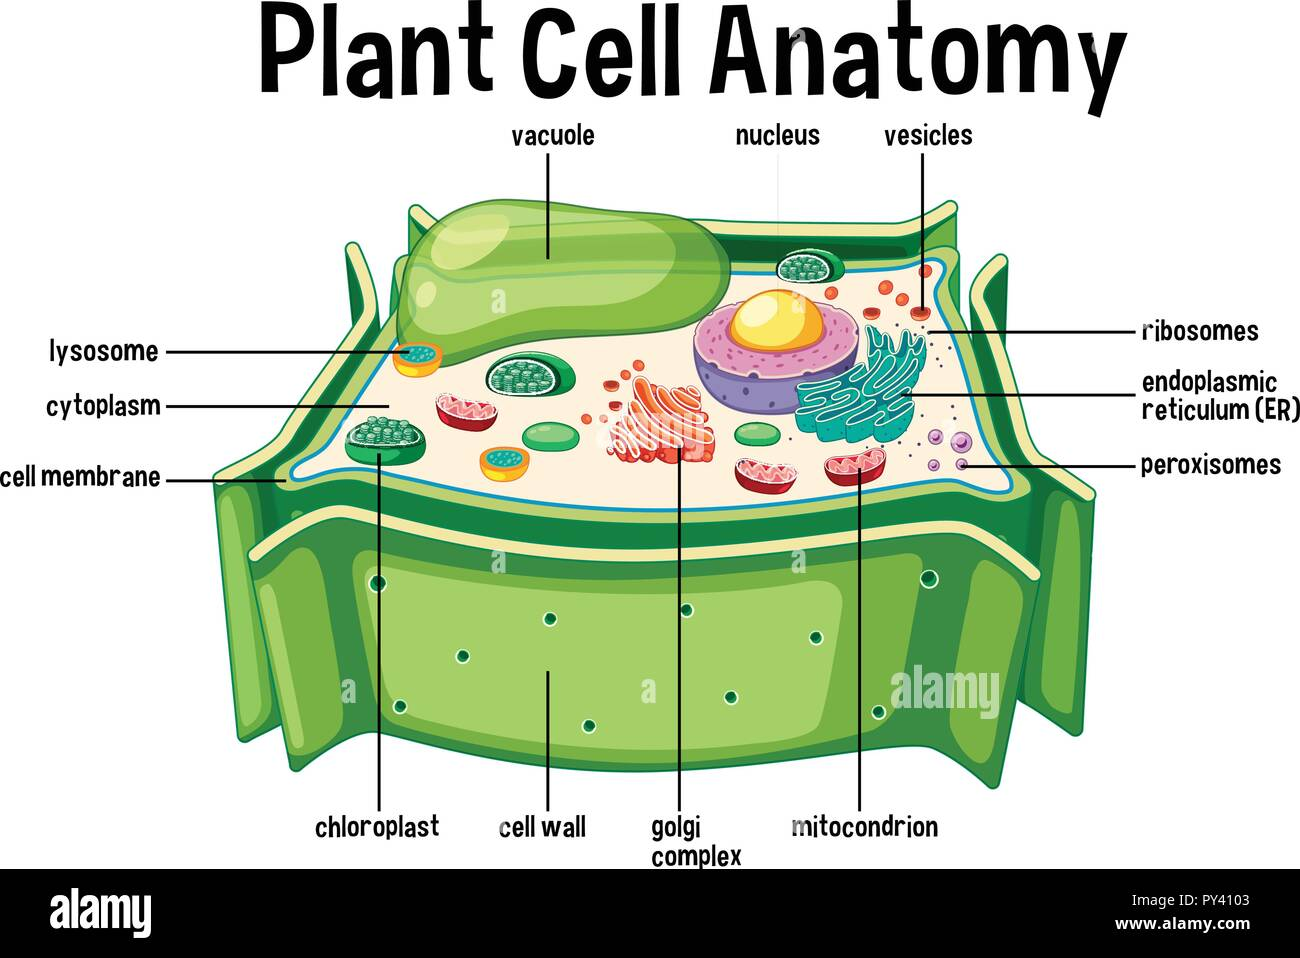 Lysosome Stock Photos Images Alamy Eukaryotic Plant Cell Diagram This Is A Anatomy Illustration Image